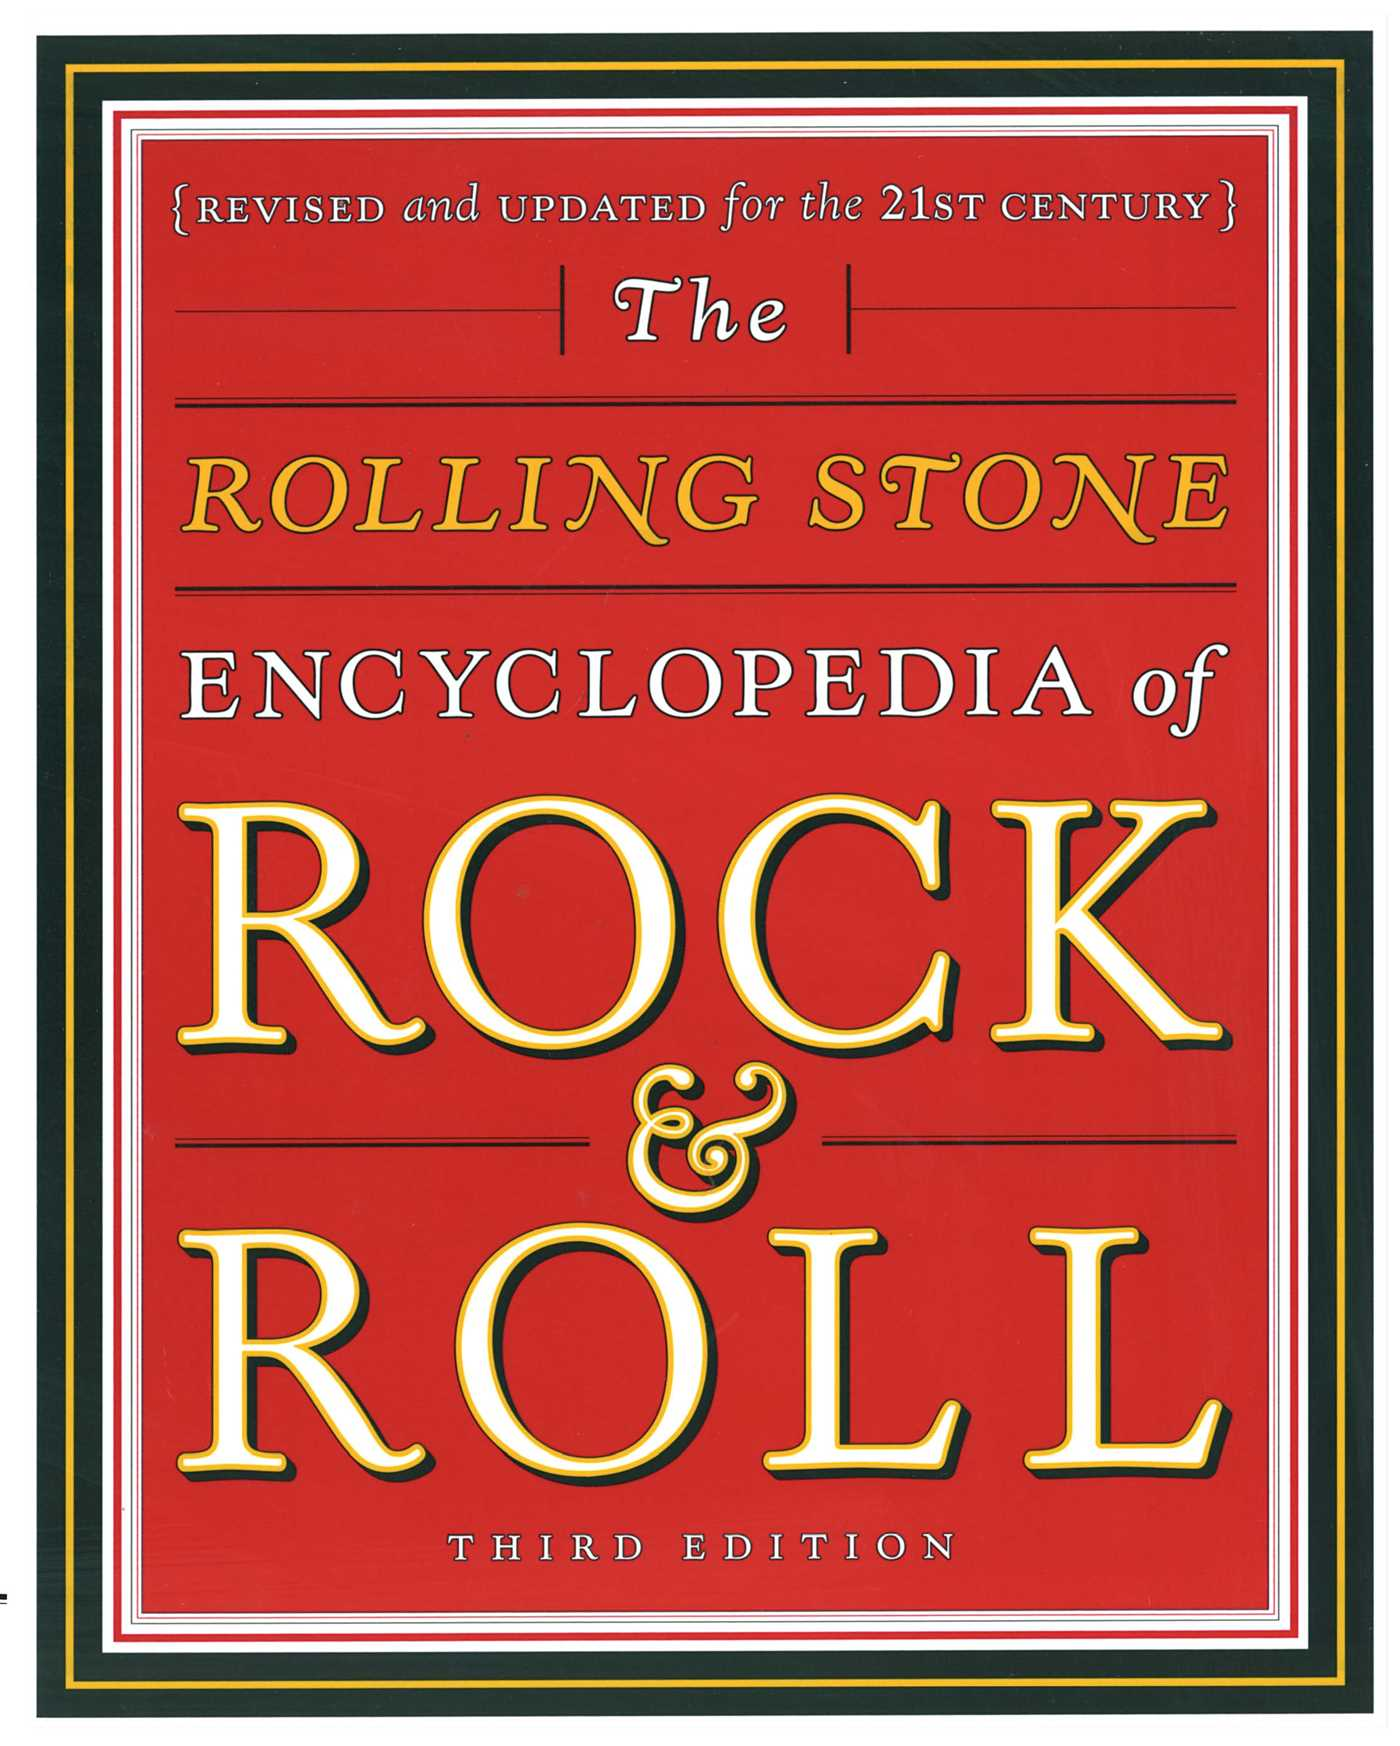 Rolling stone encyclopedia of rock roll 9780743201209 hr